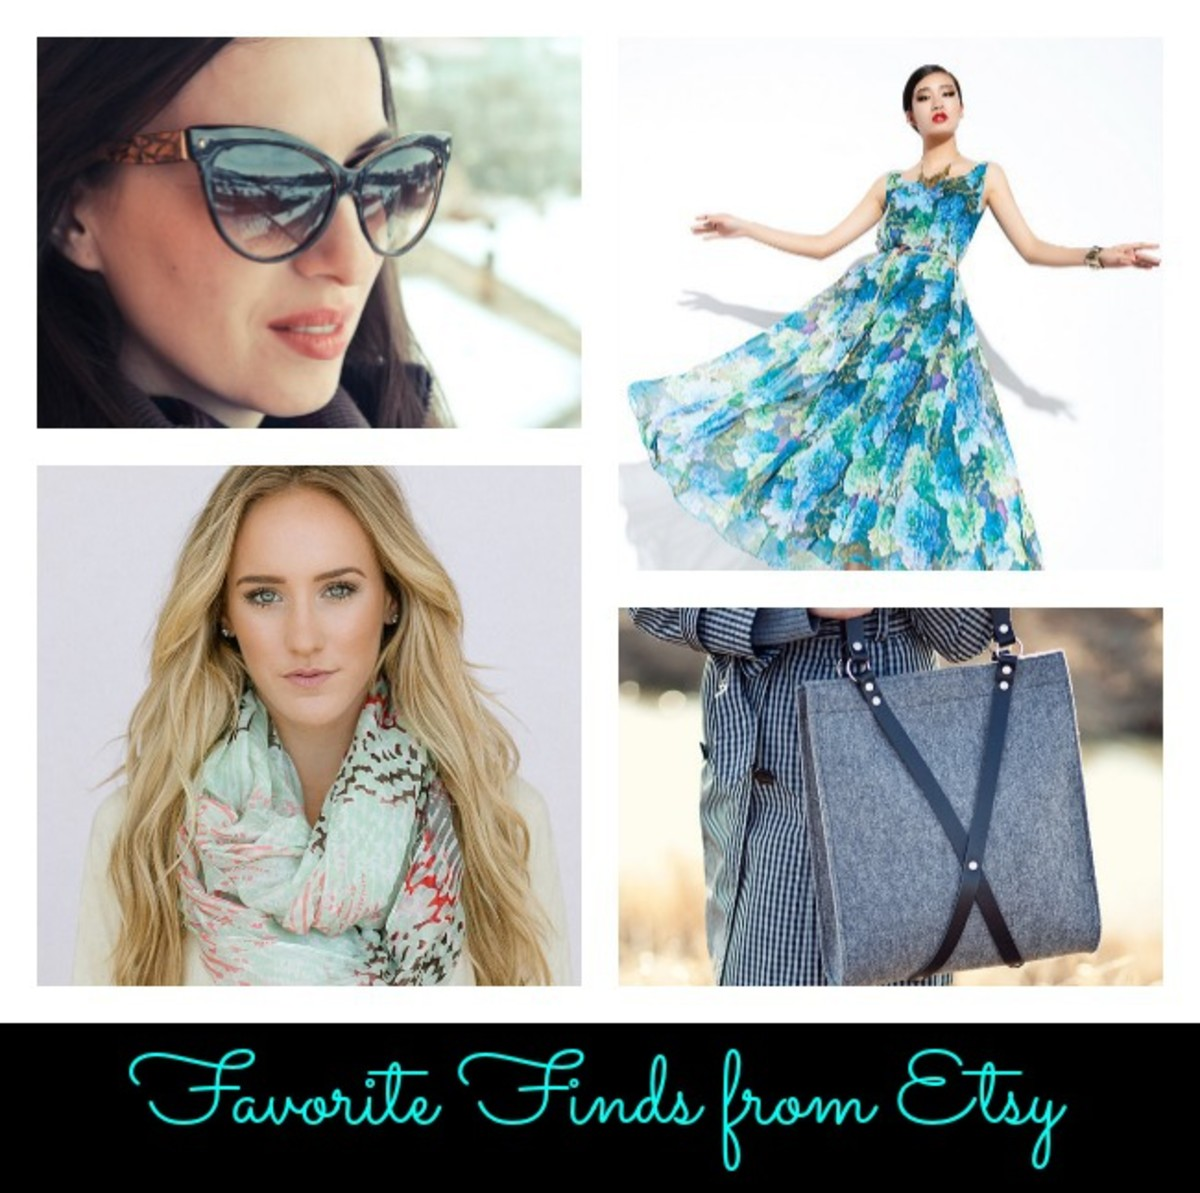 Friday Finds New Looks From Eijffinger: Friday Finds: Favorite Picks From Etsy